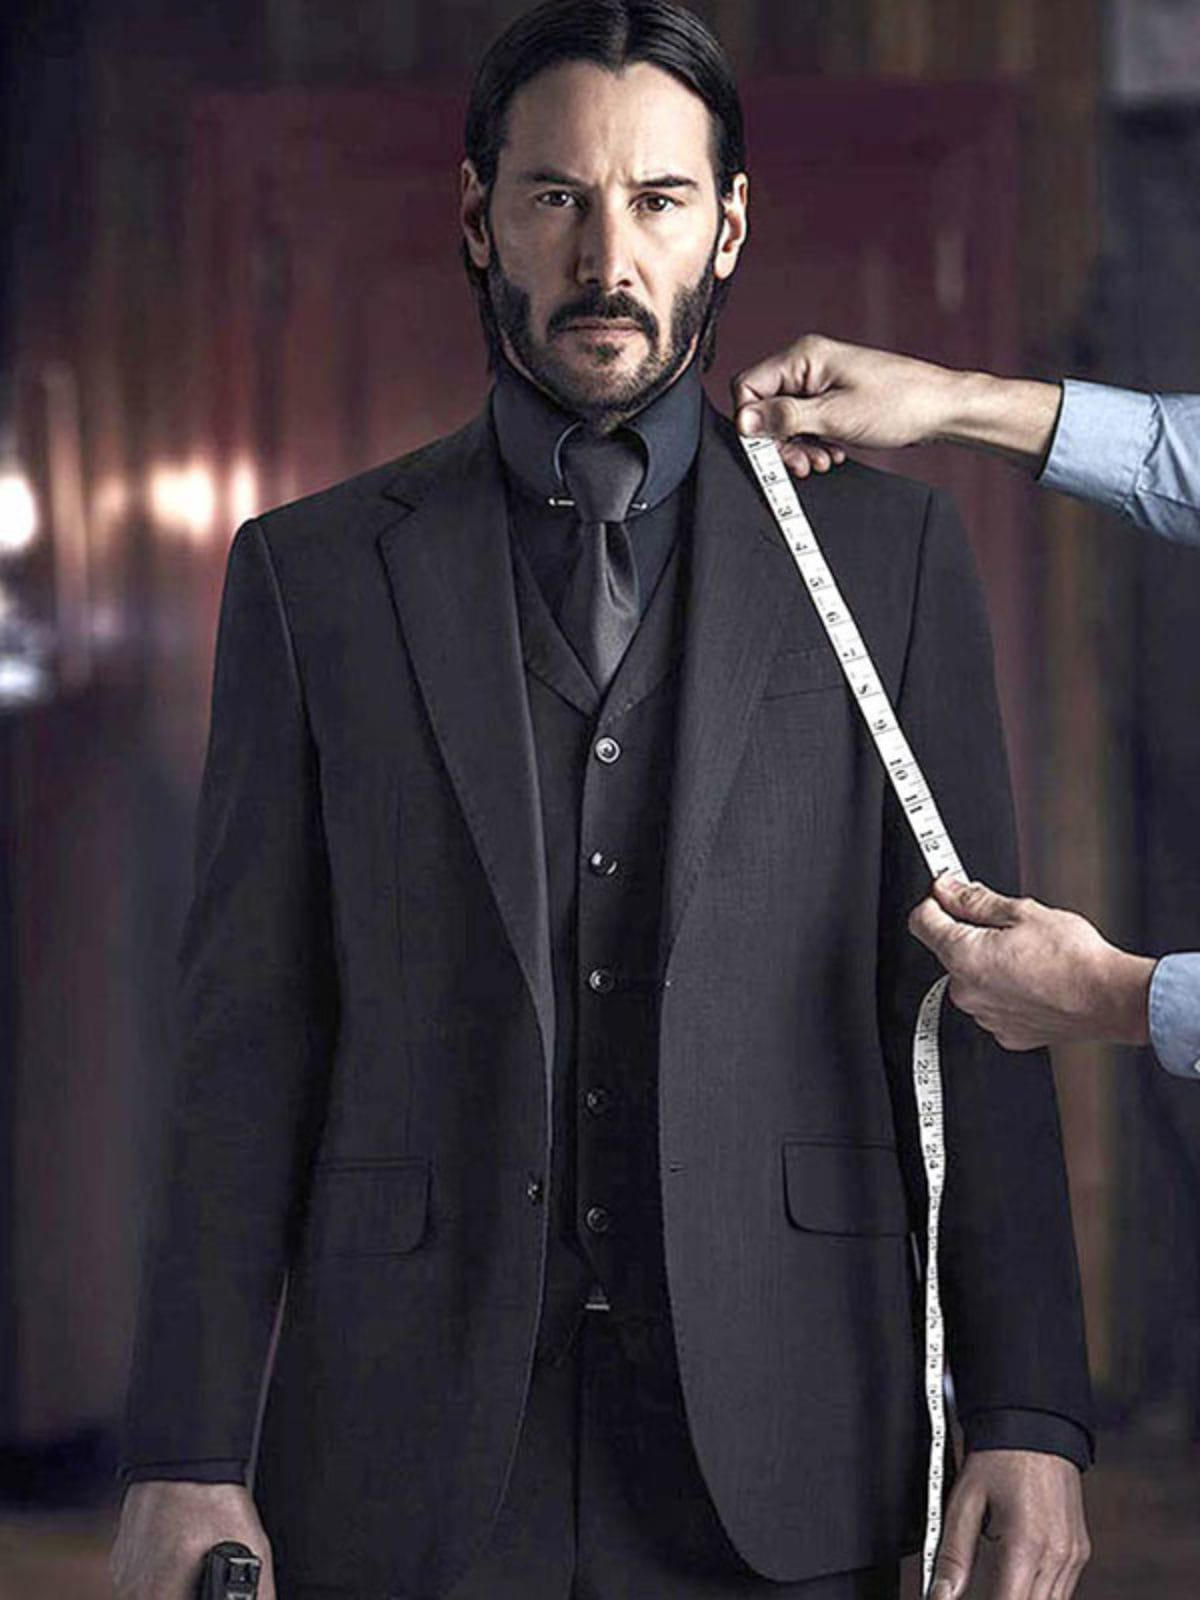 John Wick Keanu Reeves Three PIece Suit